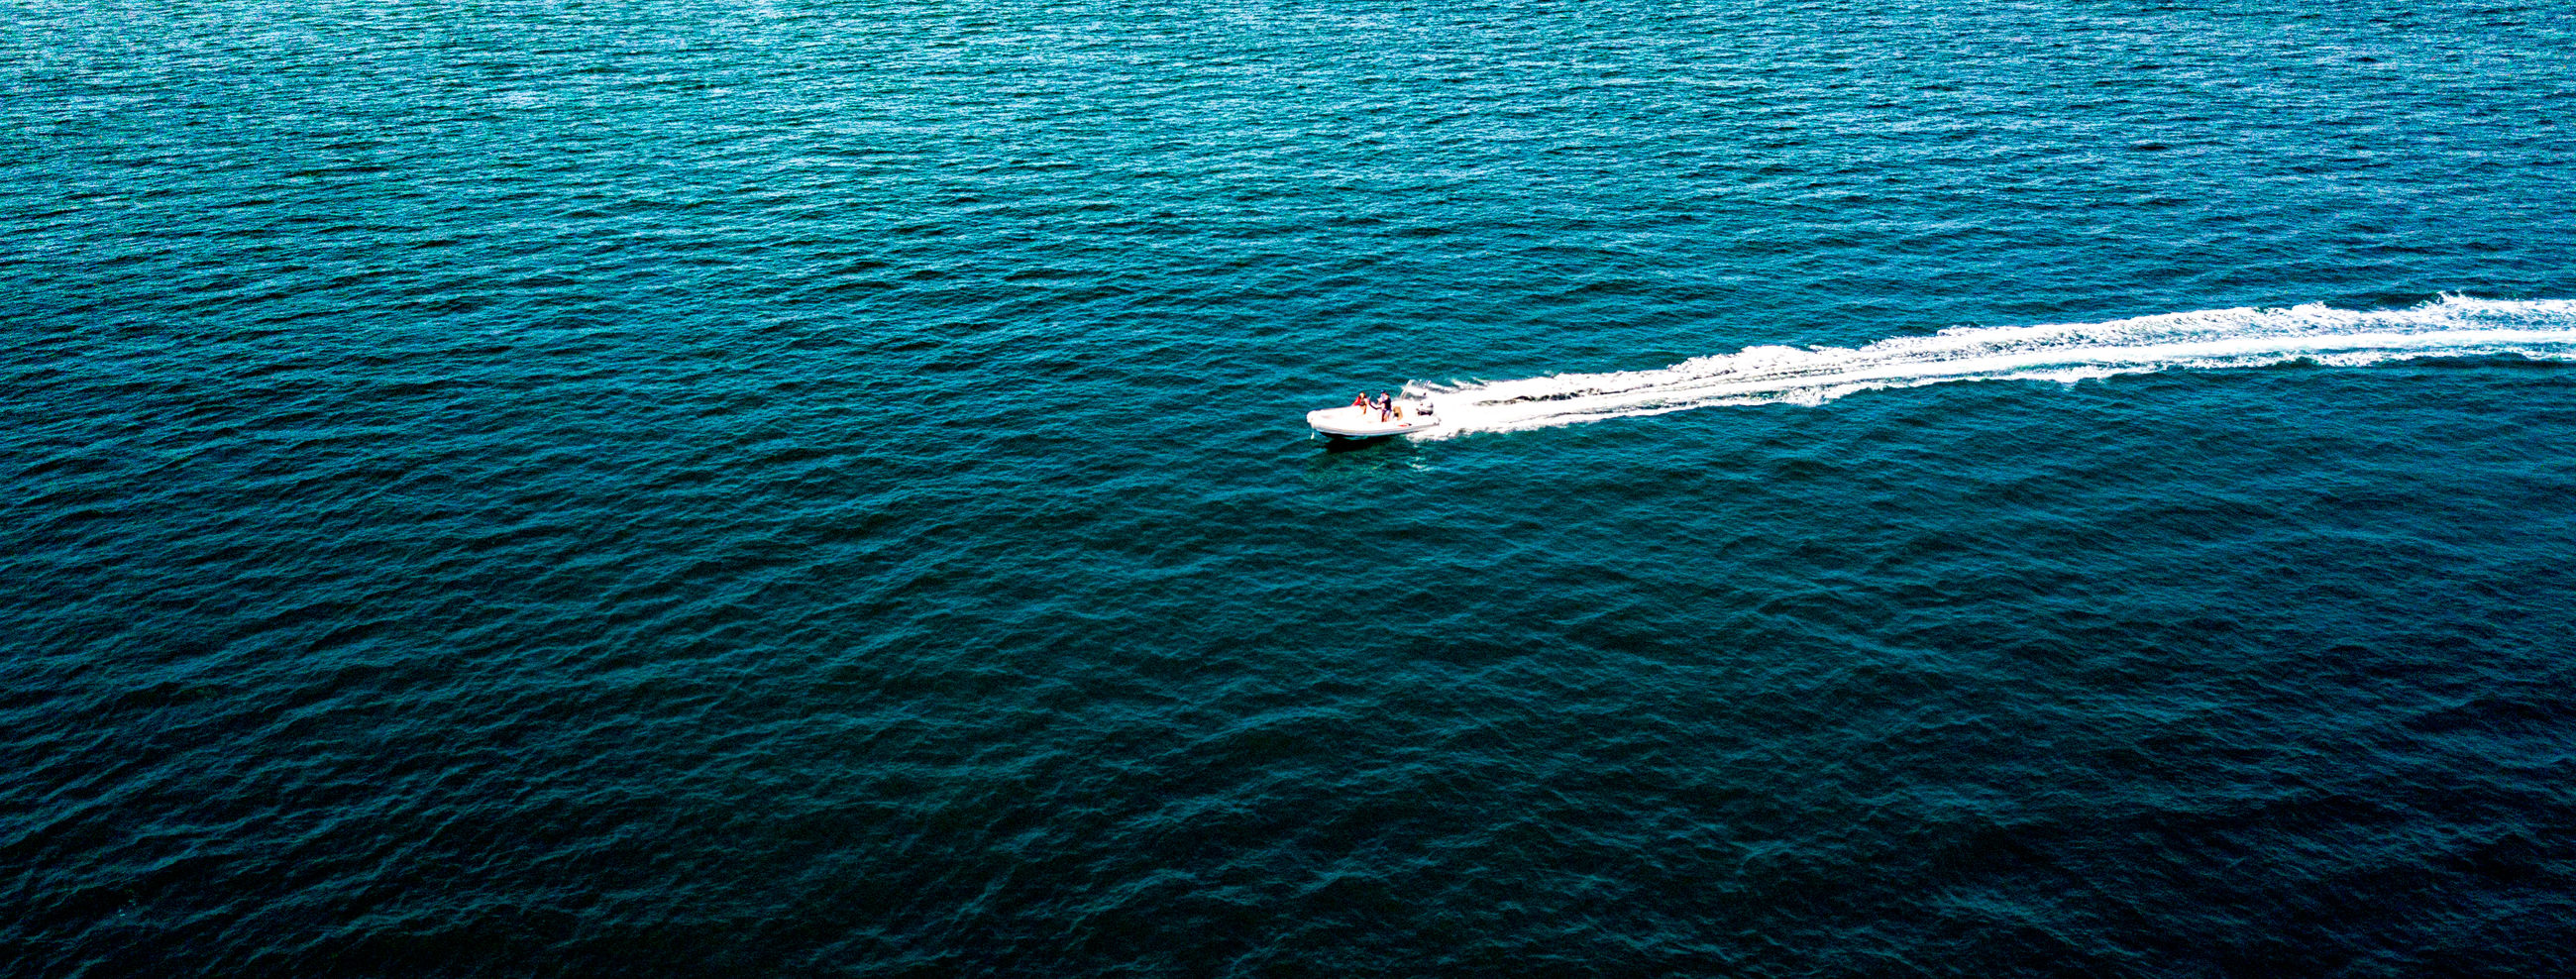 sea, water, nautical vessel, motion, high angle view, blue, day, waterfront, no people, transportation, nature, wave pattern, beauty in nature, scenics - nature, mode of transportation, outdoors, rippled, wake - water, sport, turquoise colored, marine